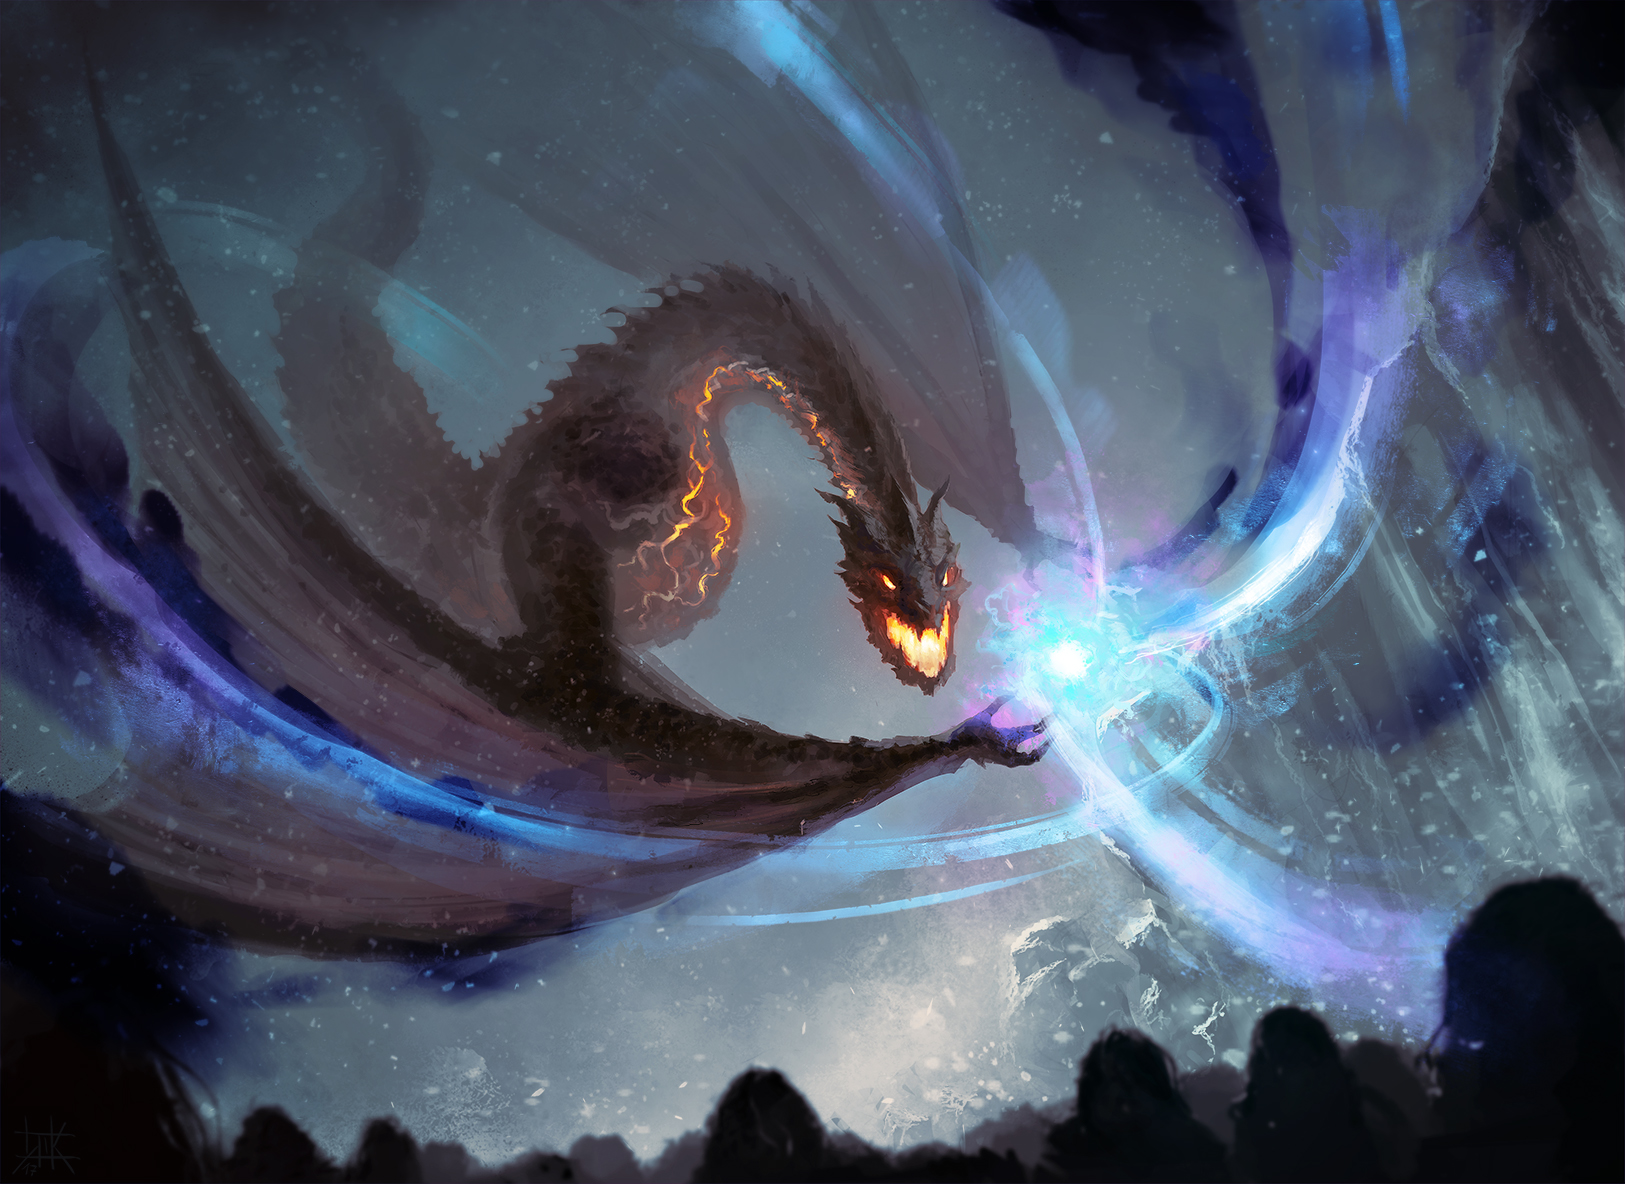 Crossover - Smaug at The Wall by cubehero